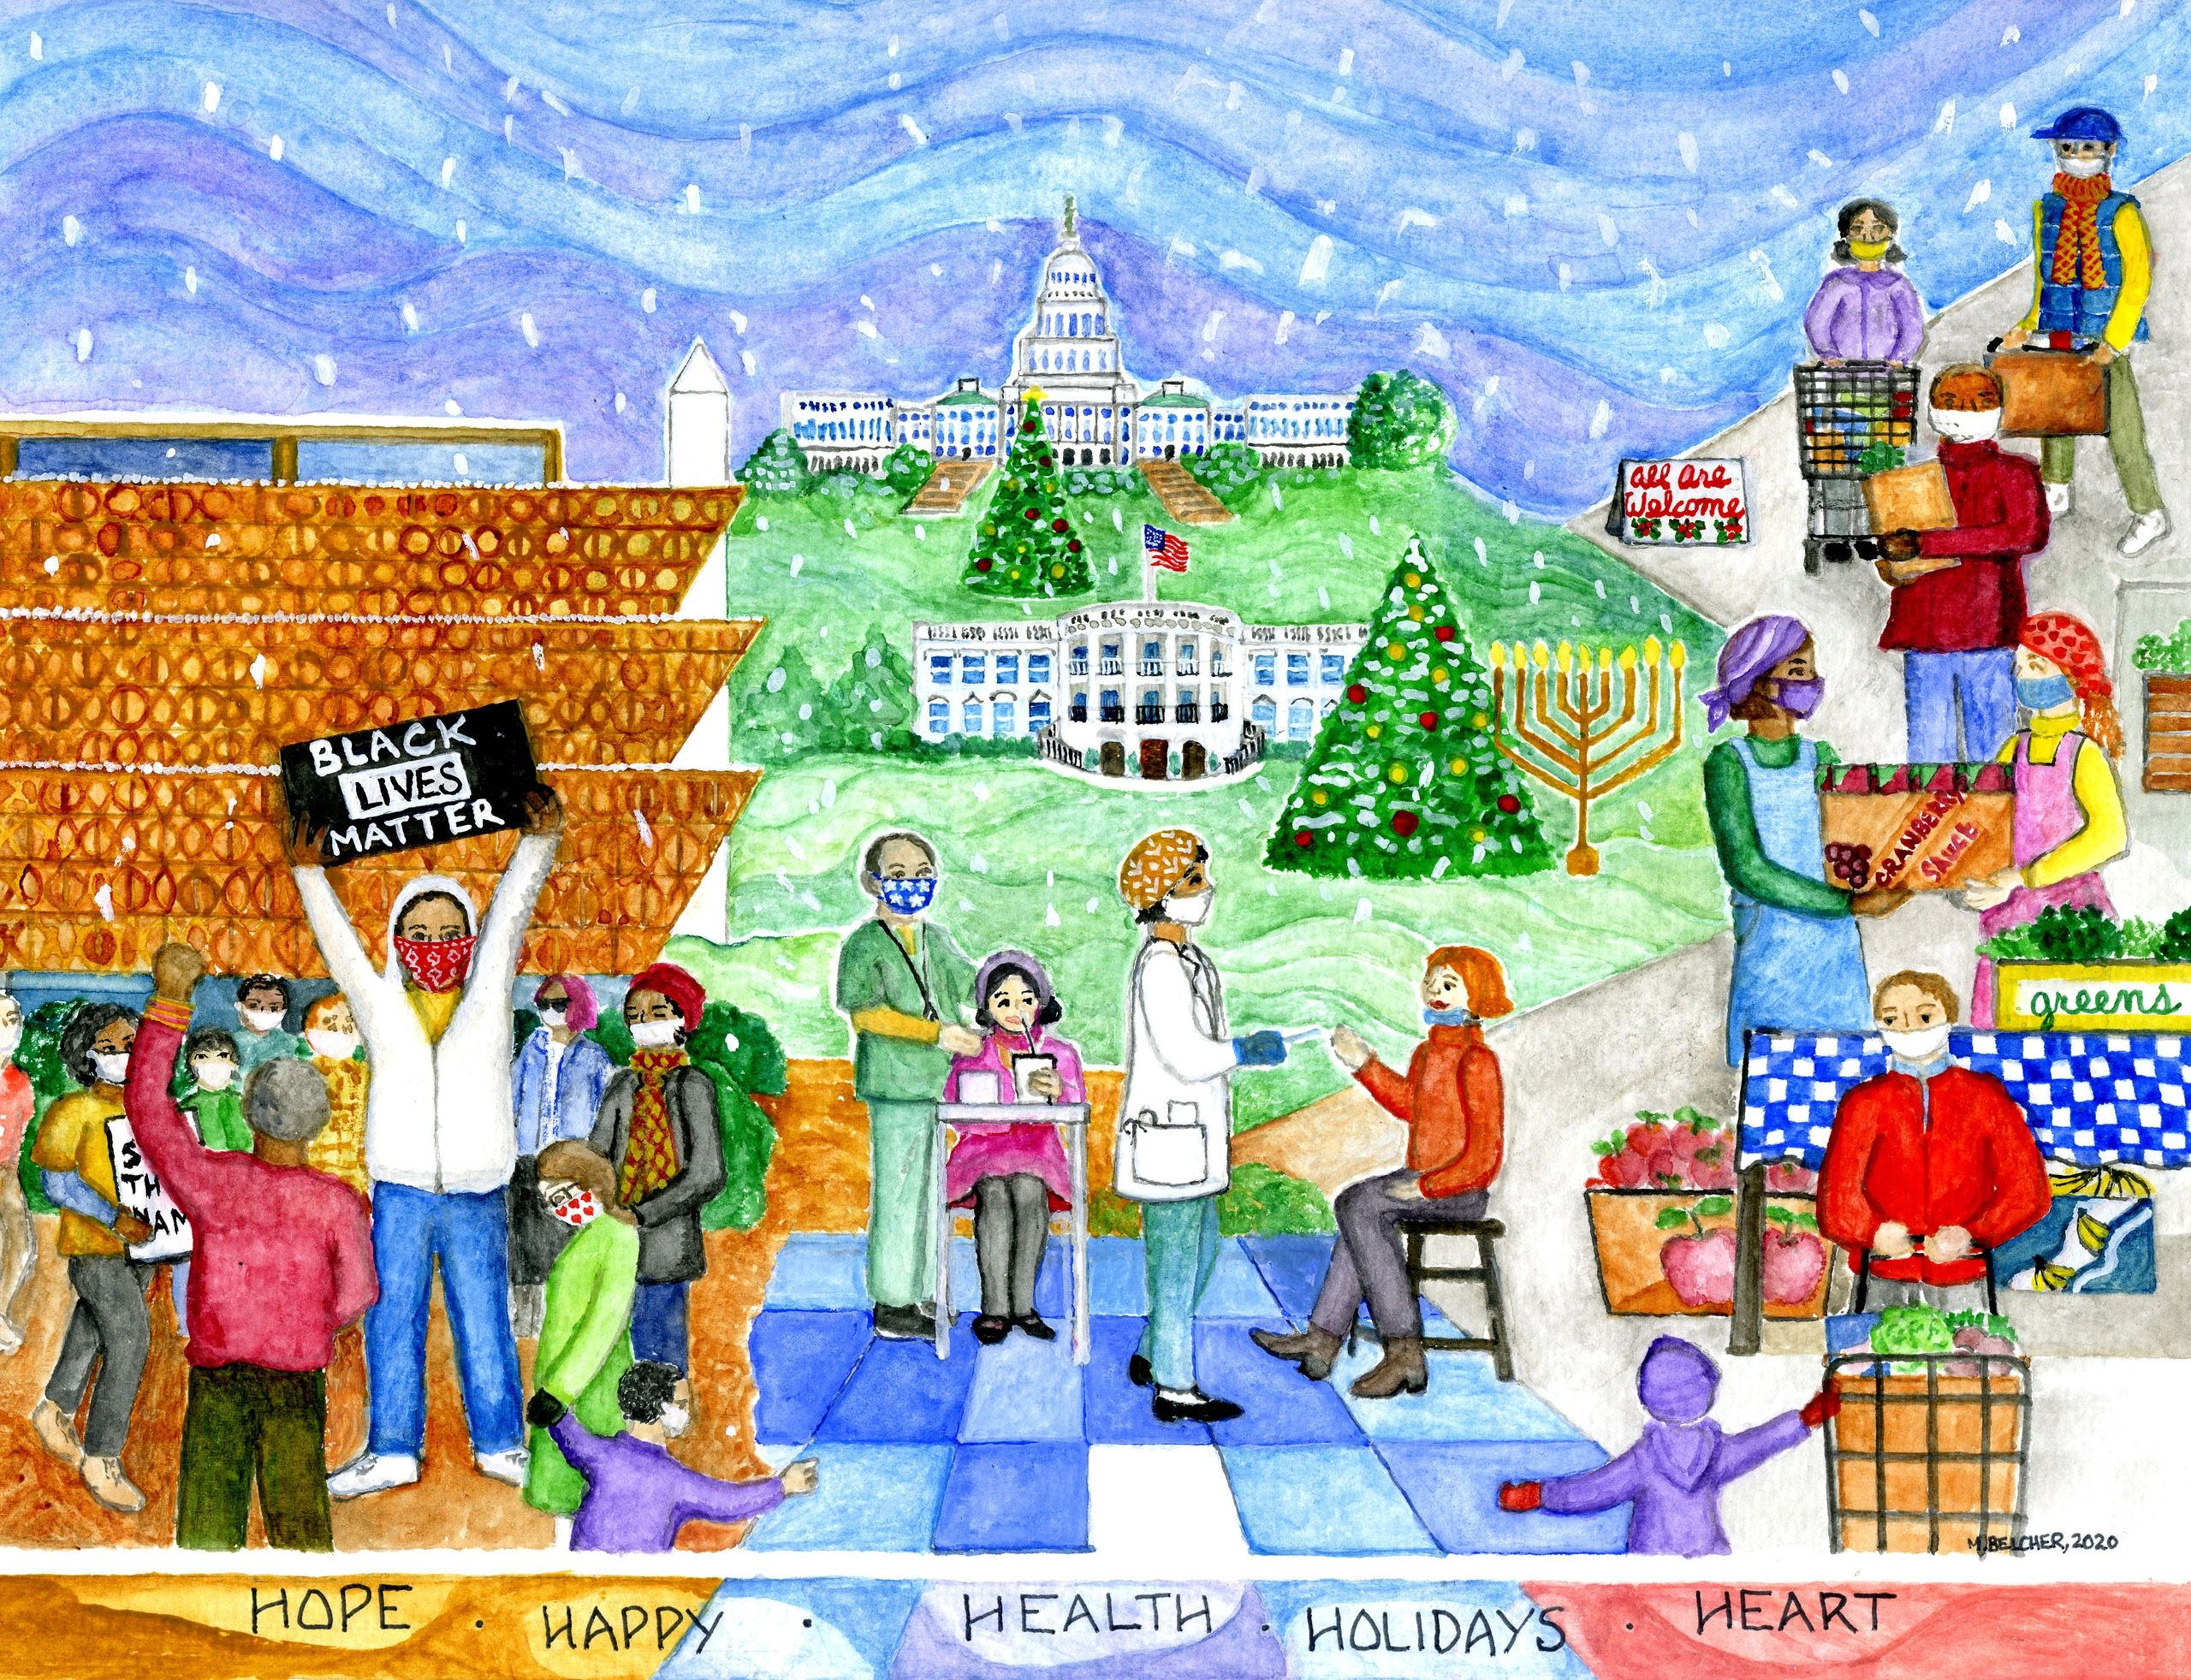 Hope, Health, and Heart: Happy Holidays, 2020, watercolor by Mary Belcher, marybelcher.com.